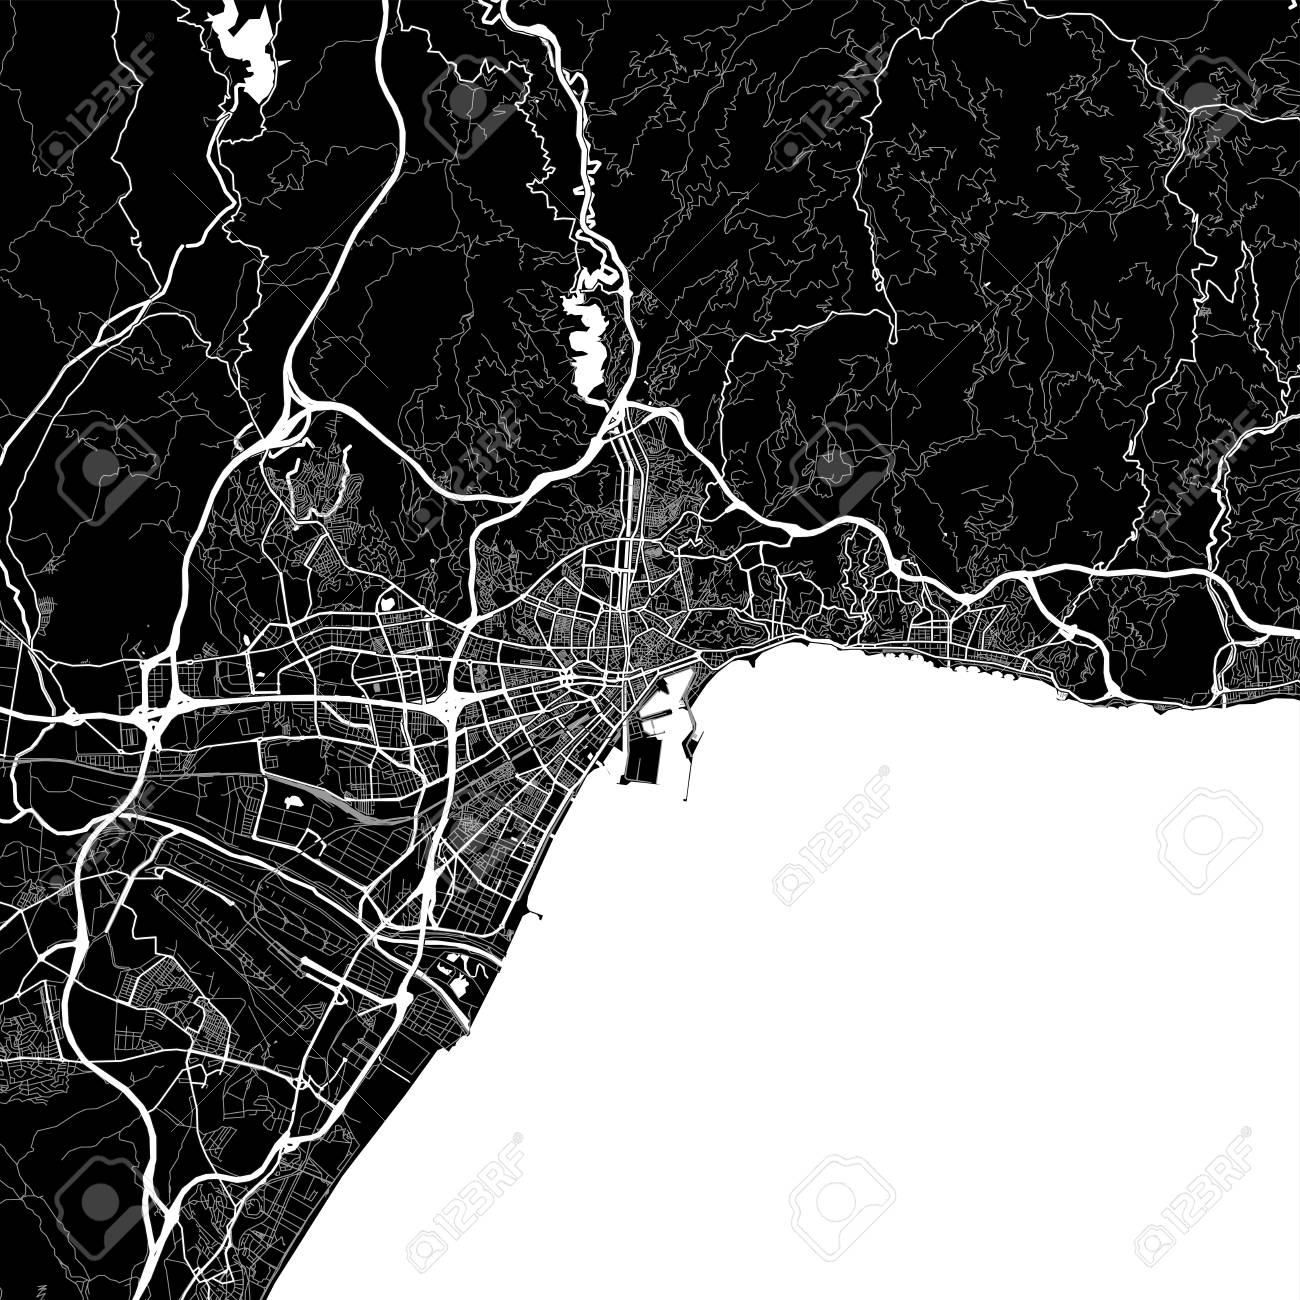 Map Of Malaga Spain Area on costa del sol map, venice italy area map, cities in spain malaga map,